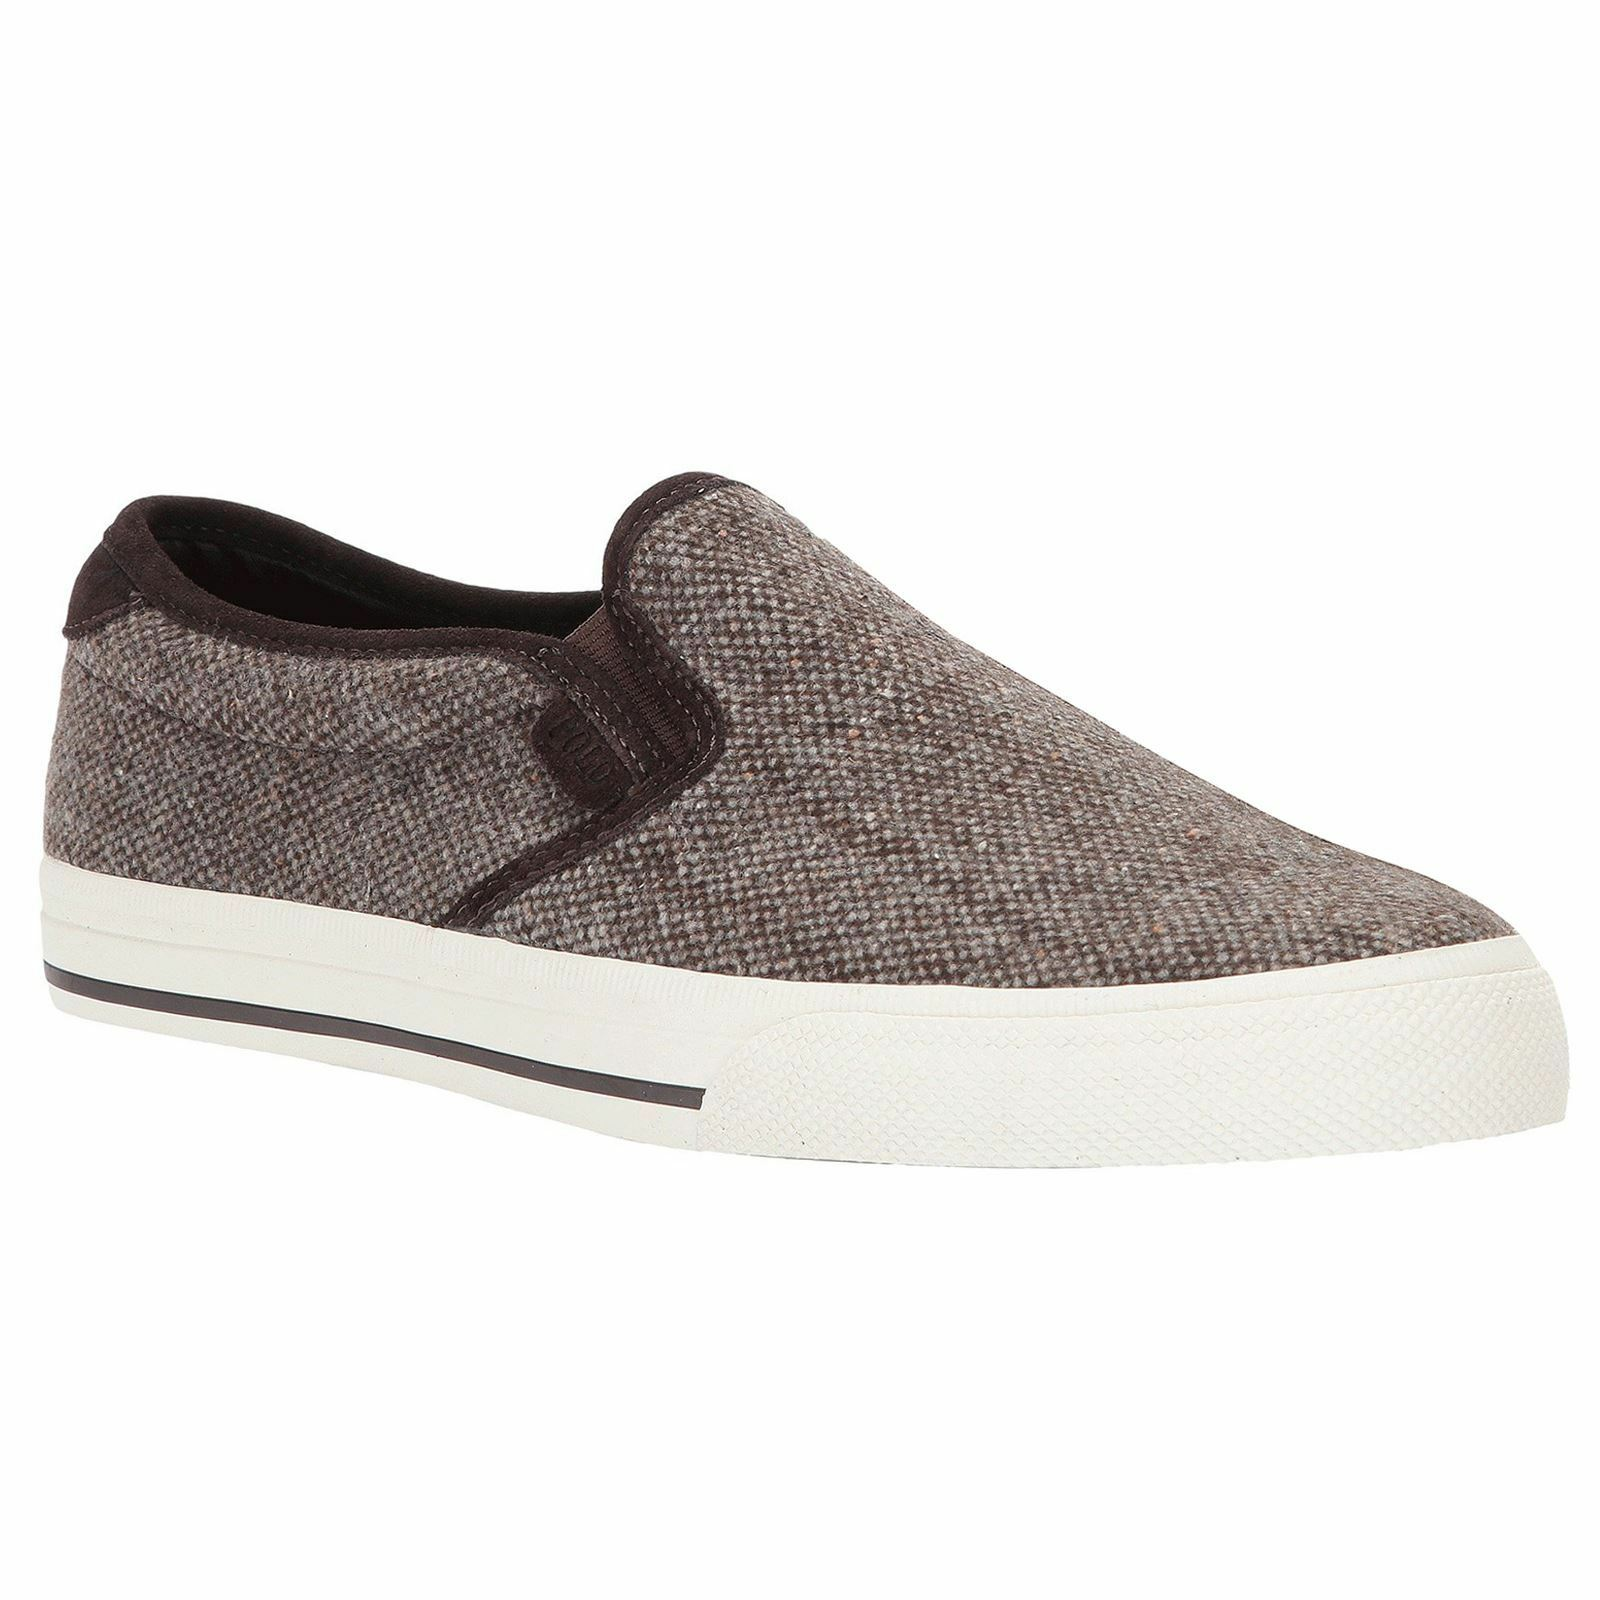 Ralph Lauren Vaughn Slip-On II Brown Men Wool Low-Top Slip-On Flats Trainers New